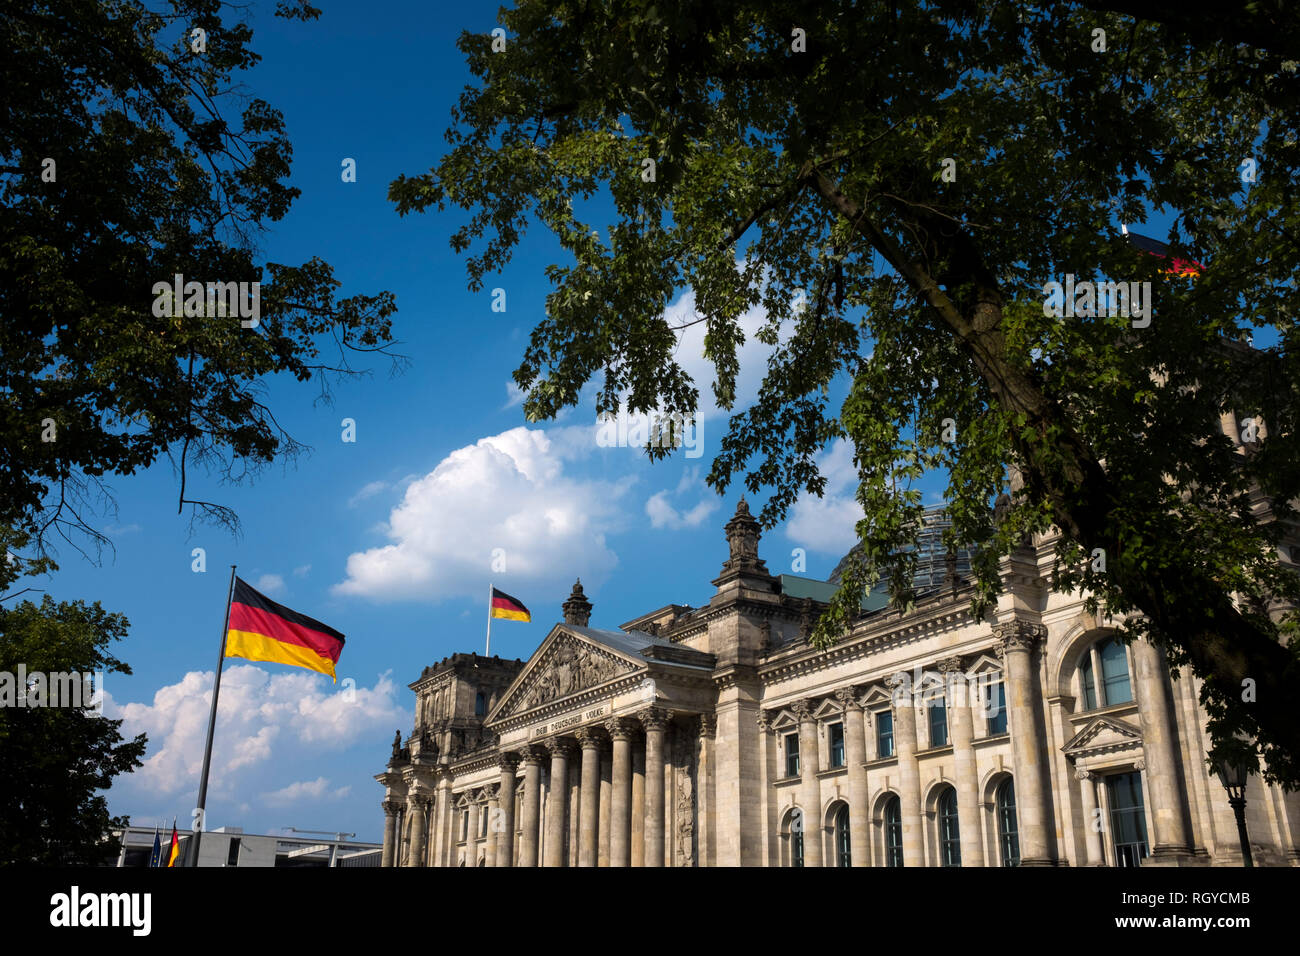 An exterior view of the Reichstag building in Berlin. The historical seat of Germany's parliament since the time of the Holy Roman Empire, it was damaged during Word War II. The ruined building was made safe against the elements and partially refurbished in the 1960s, but no attempt at full restoration was made until after German reunification on 3 October 1990, when it underwent a reconstruction led by architect Norman Foster. After its completion in 1999, it once again became the meeting place of the German parliament: the modern Bundestag. Stock Photo